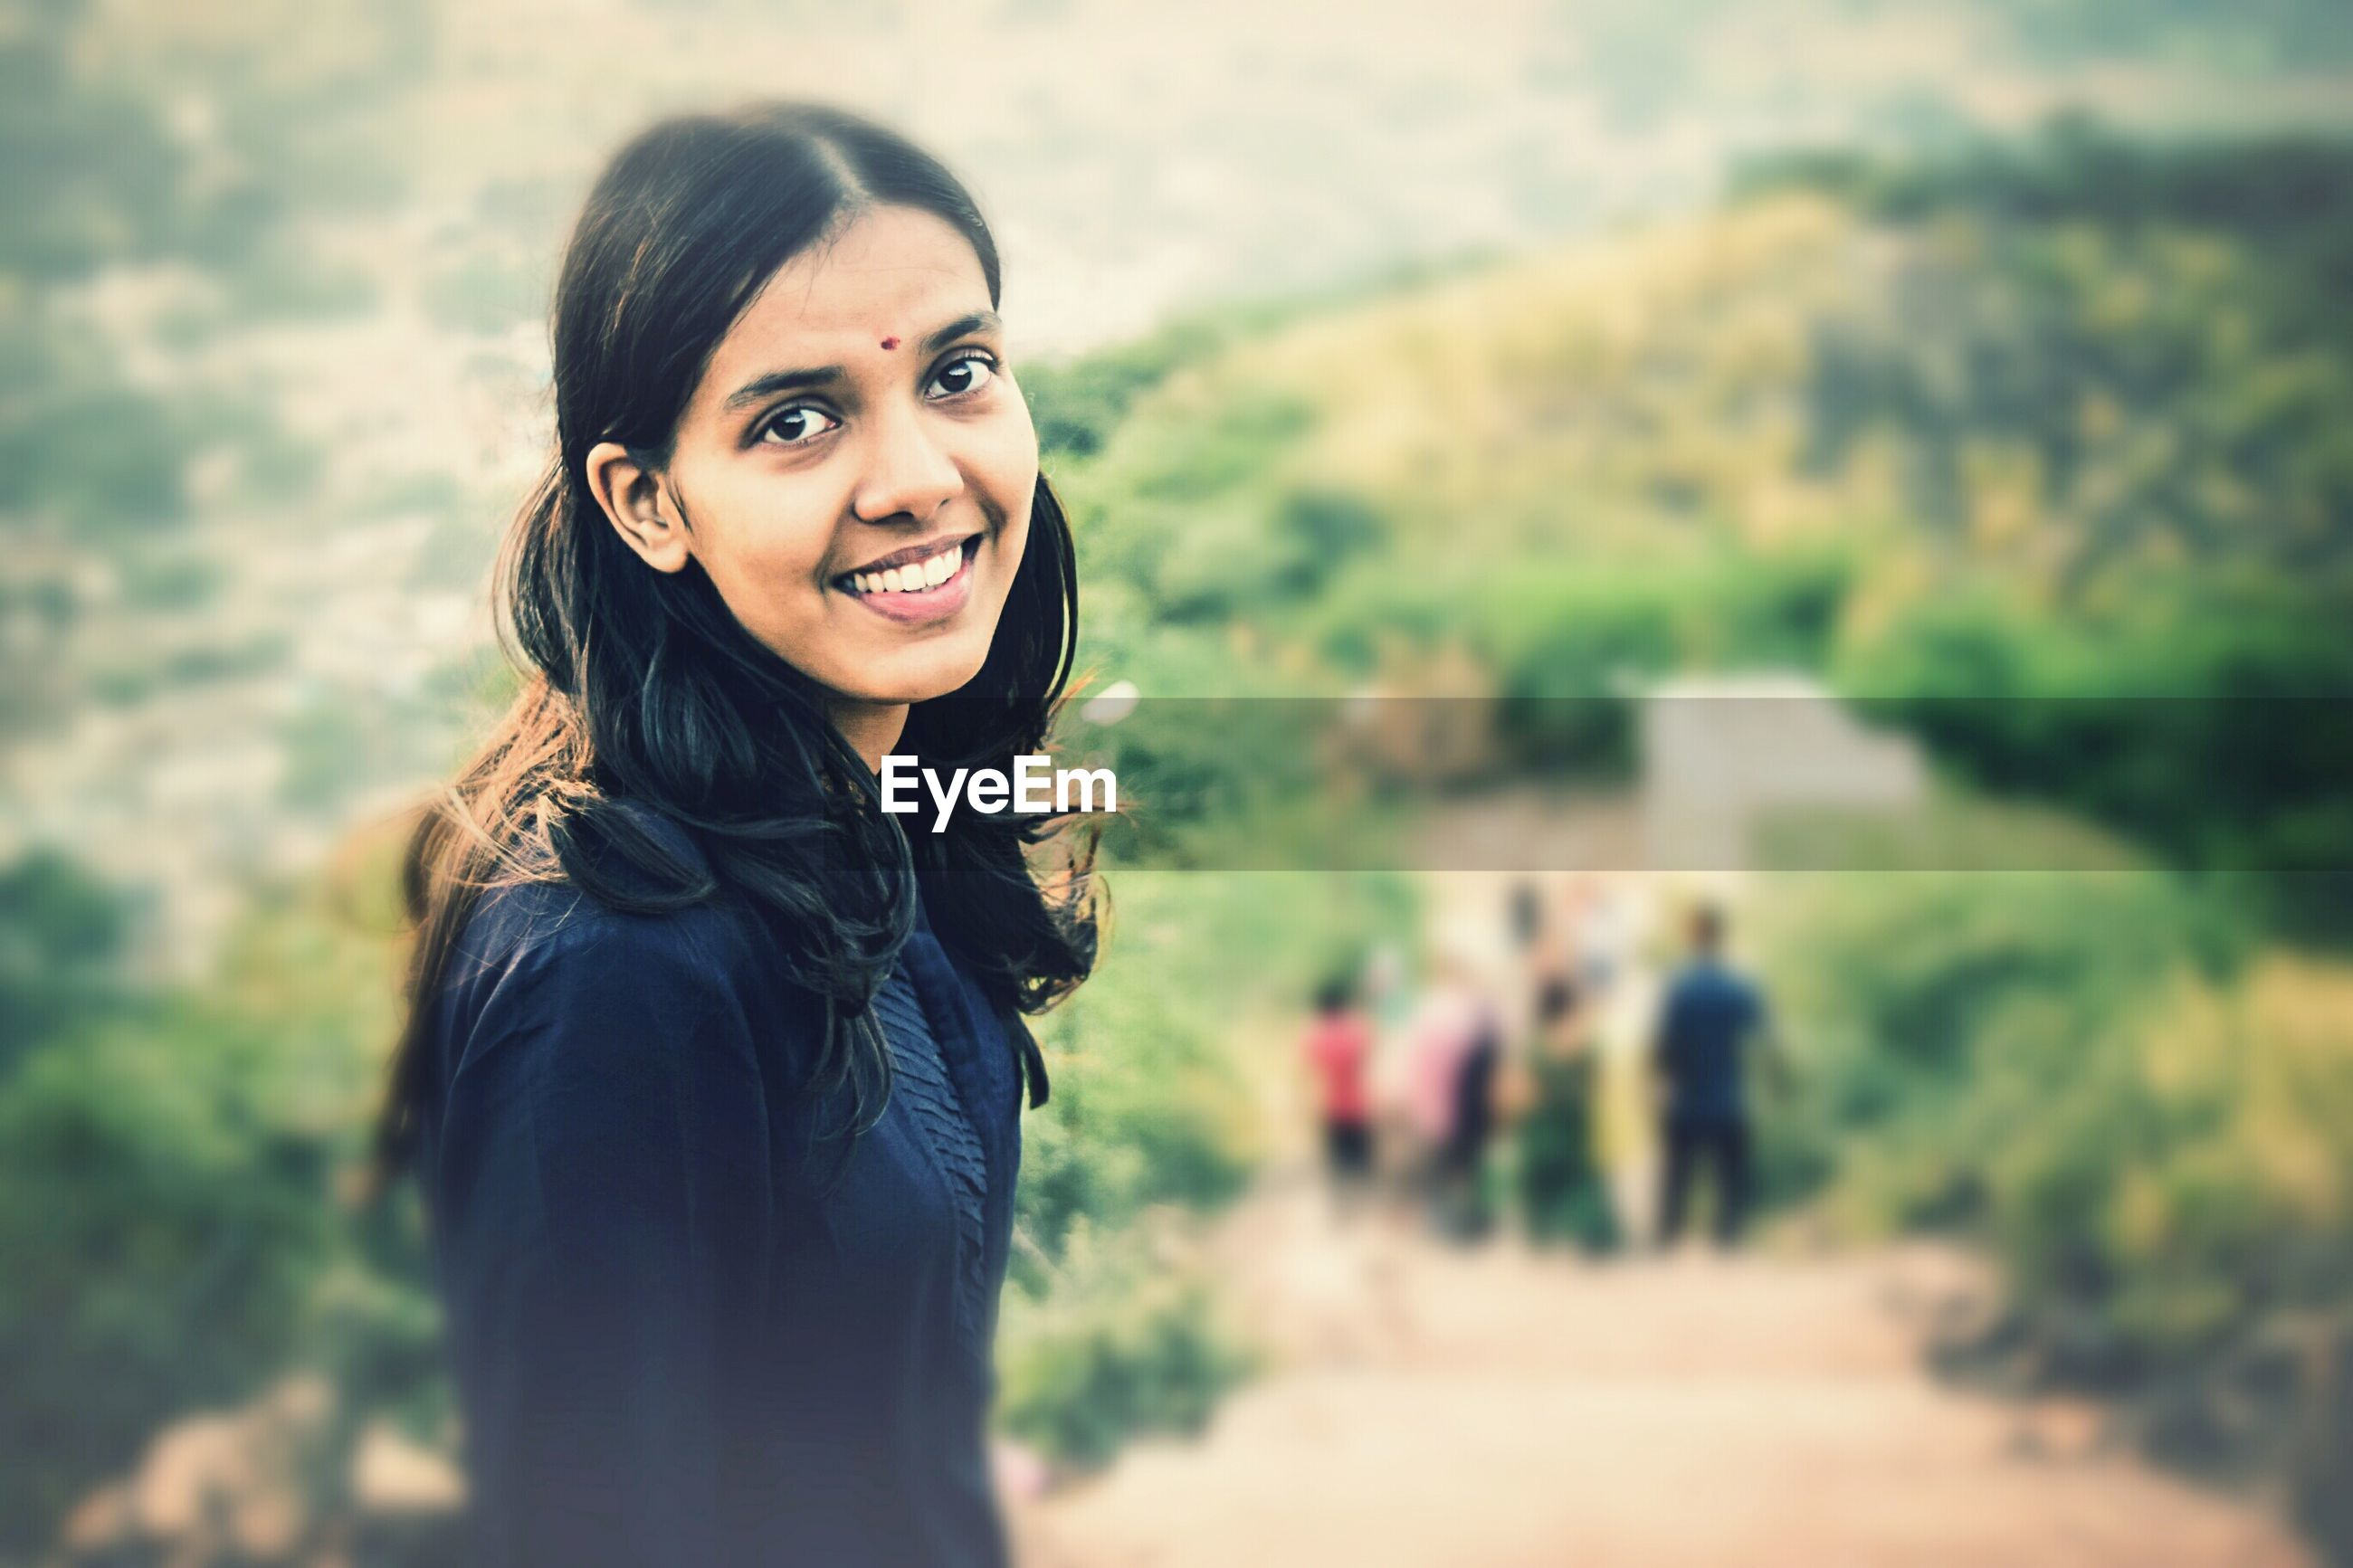 portrait, smiling, toothy smile, beauty, beautiful people, young adult, women, looking at camera, happiness, one person, beautiful woman, lifestyles, cheerful, summer, adult, nature, outdoors, young women, beauty in nature, human body part, close-up, freshness, people, day, adults only